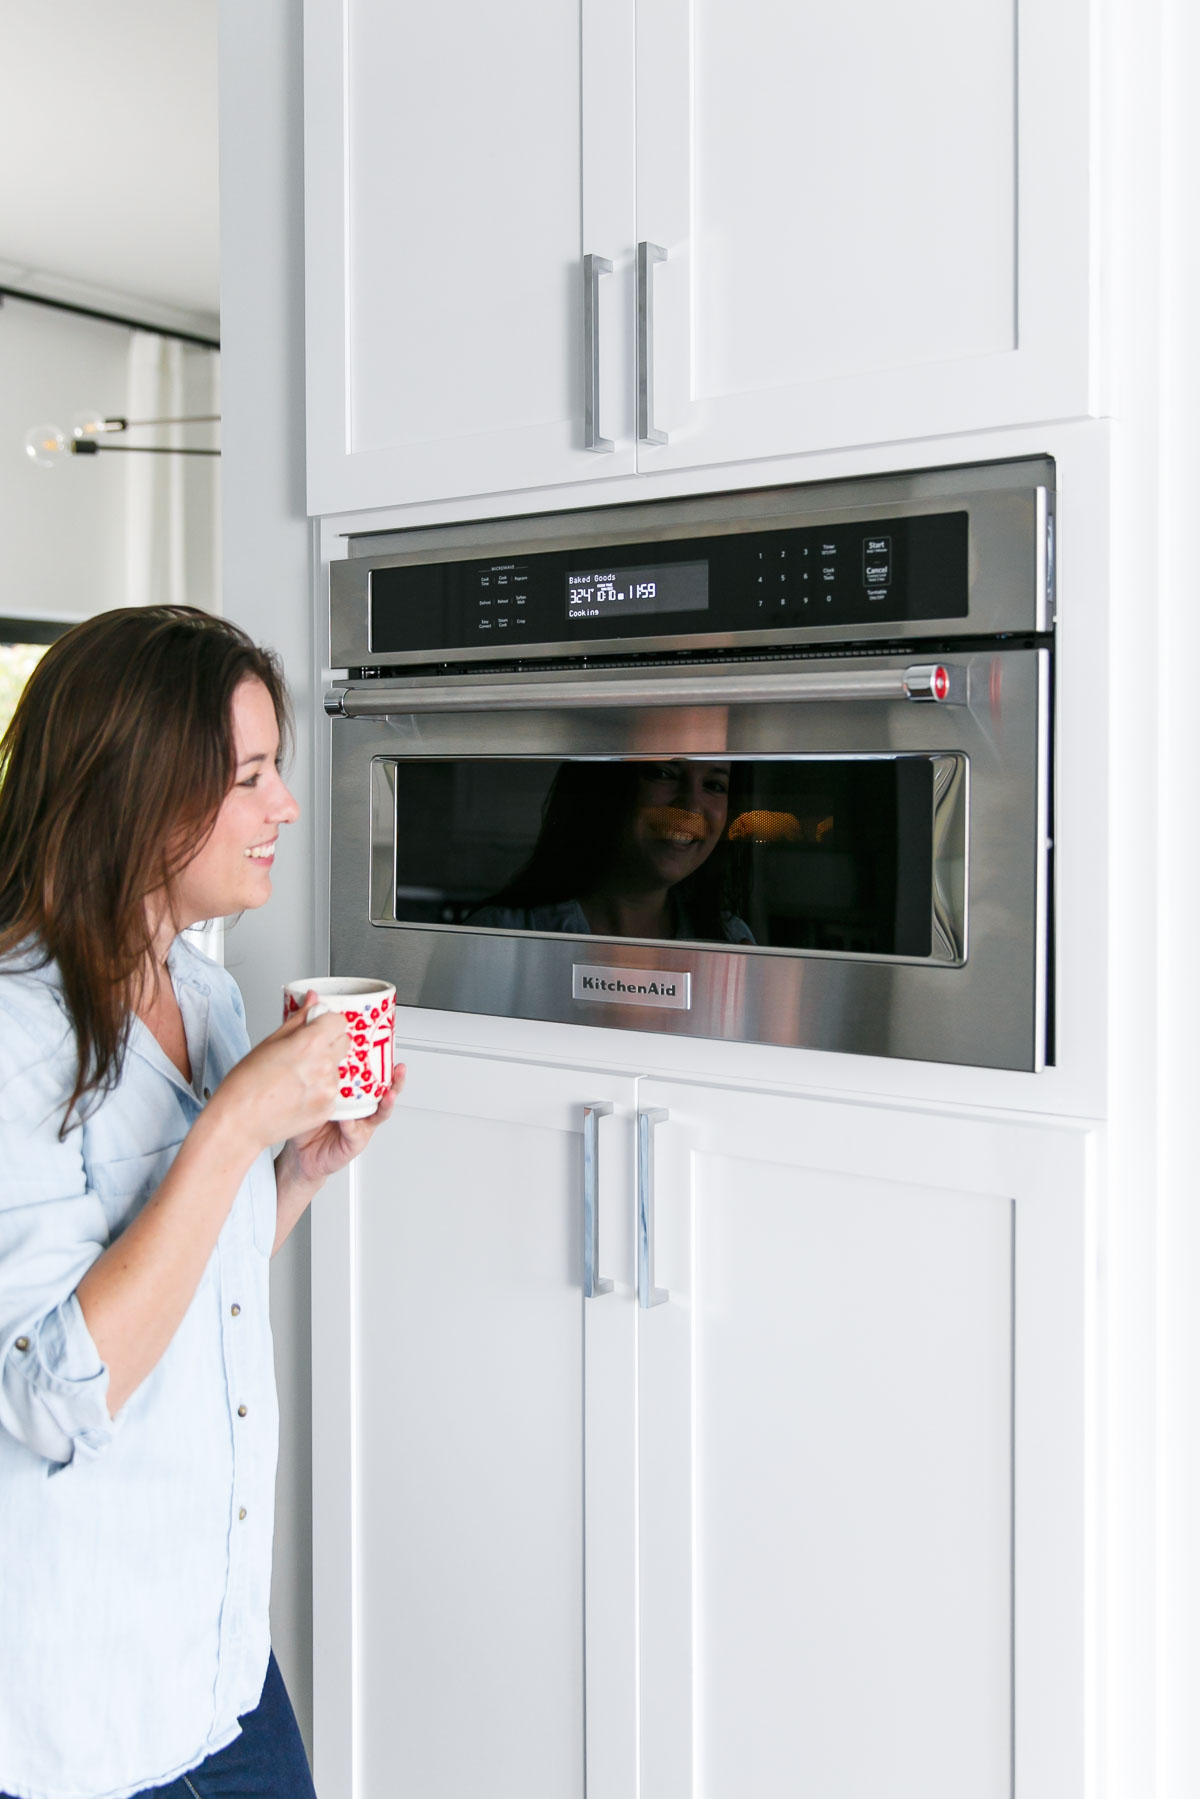 KitchenAid® Microwave Features